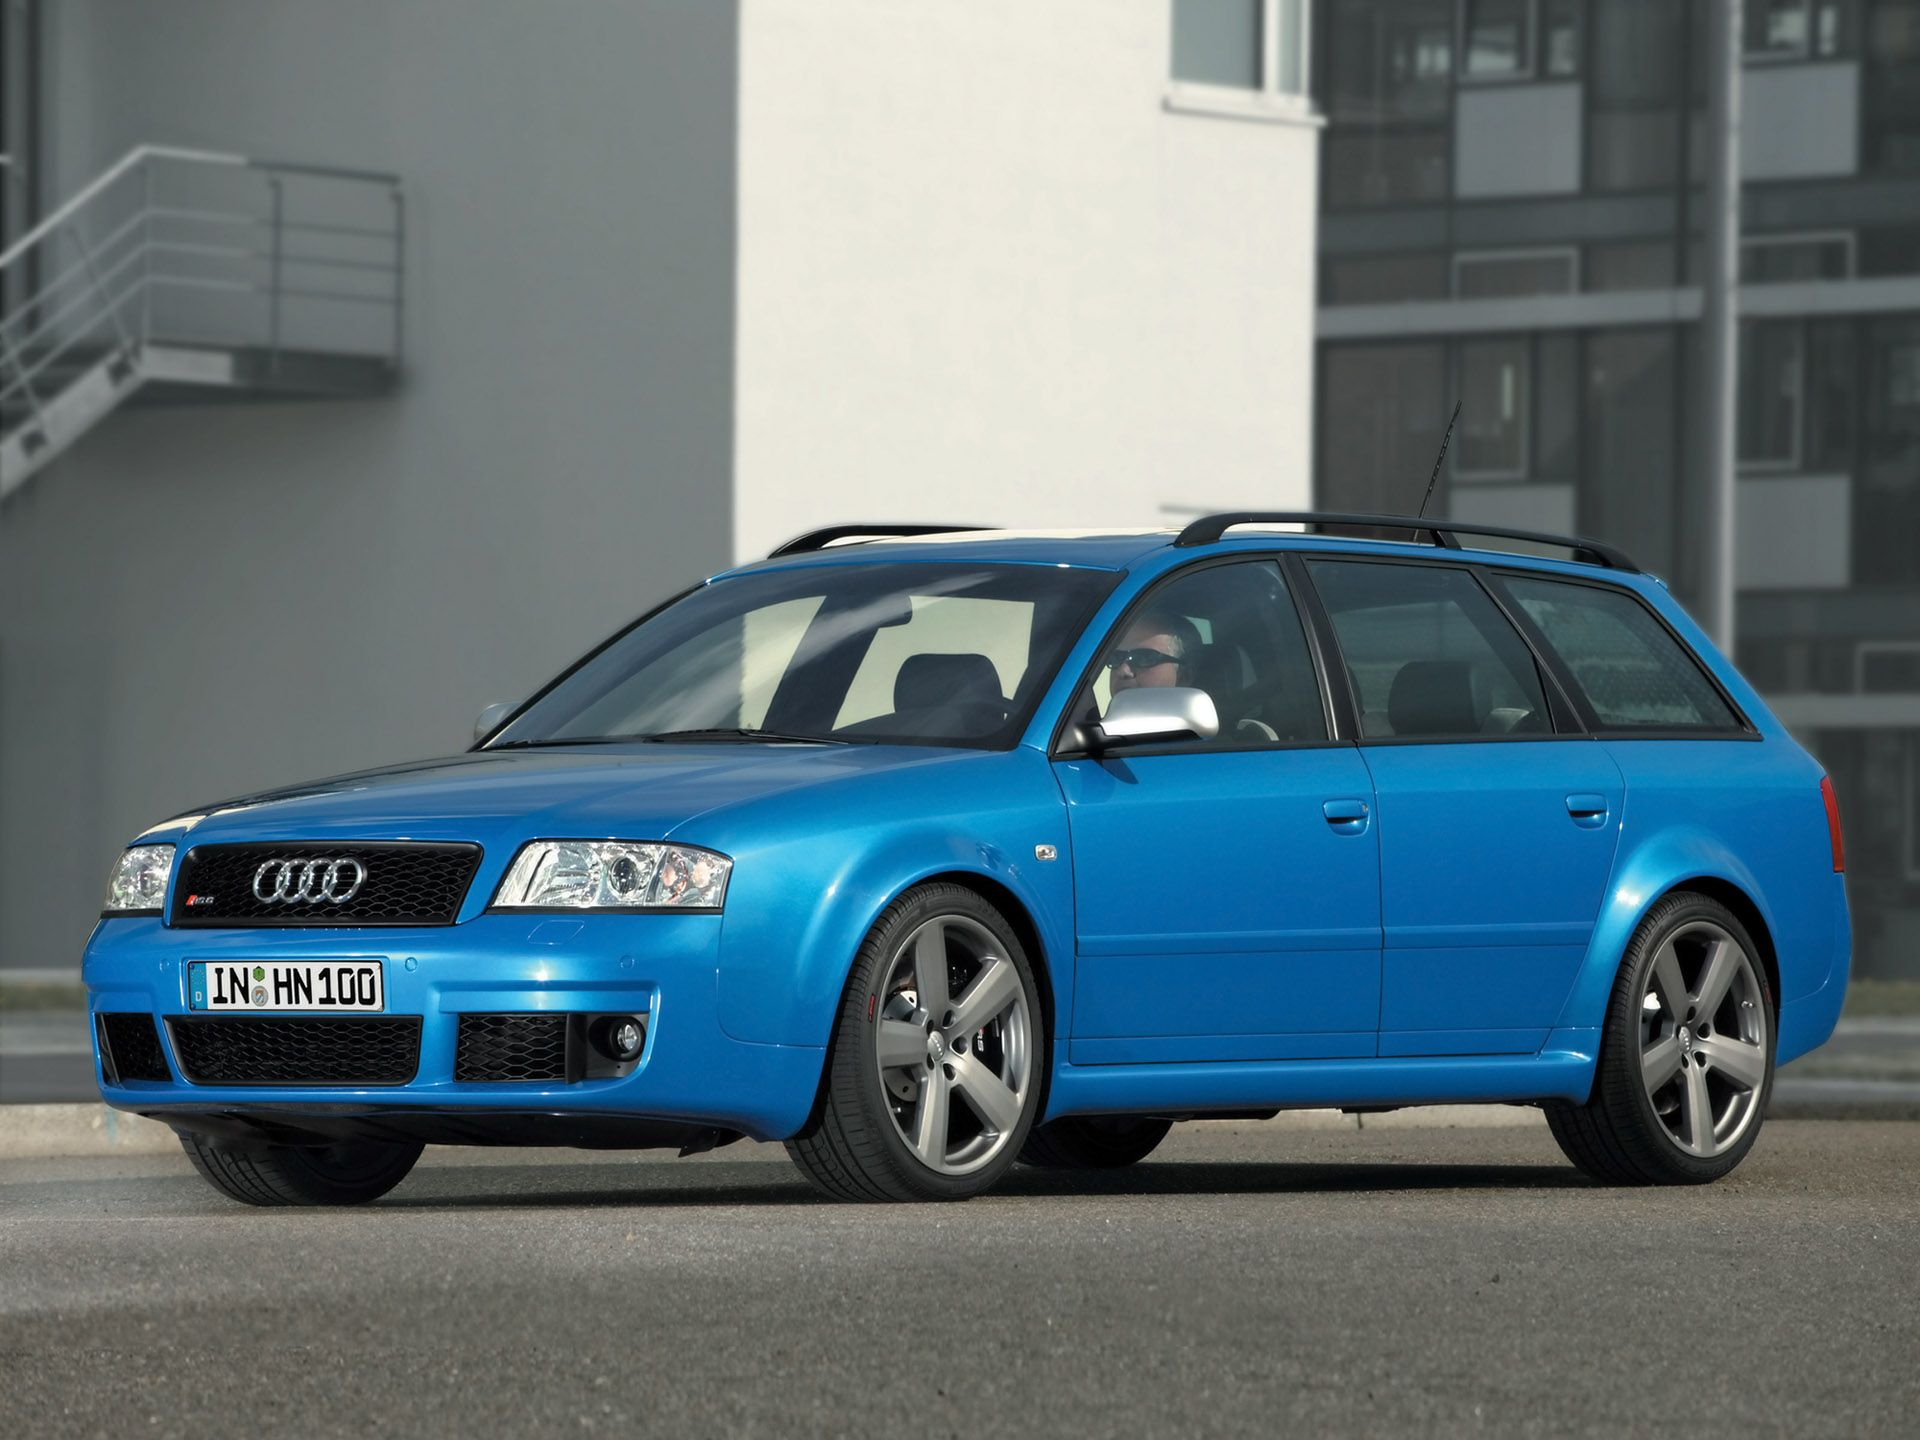 Audi a4 avant 1995 2001 used car review car review rac drive - Find This Pin And More On Cars 2004 Audi Avant